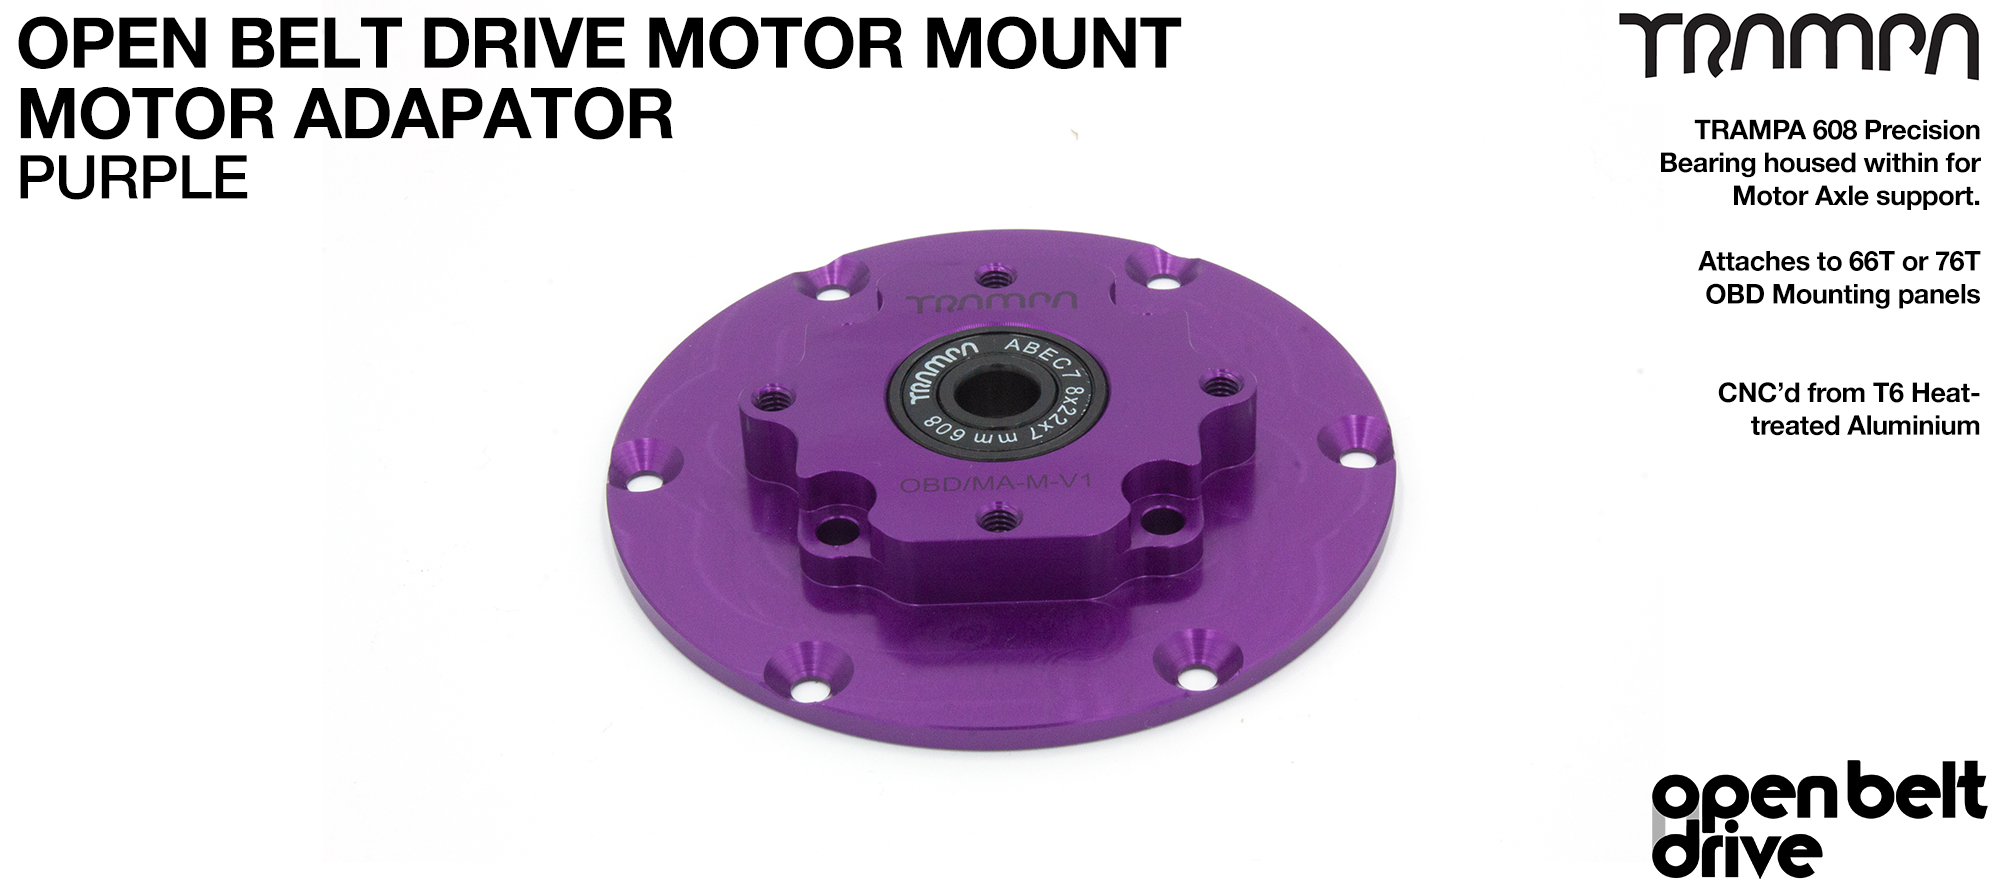 OBD Motor Adaptor with Housed Bearing - PURPLE